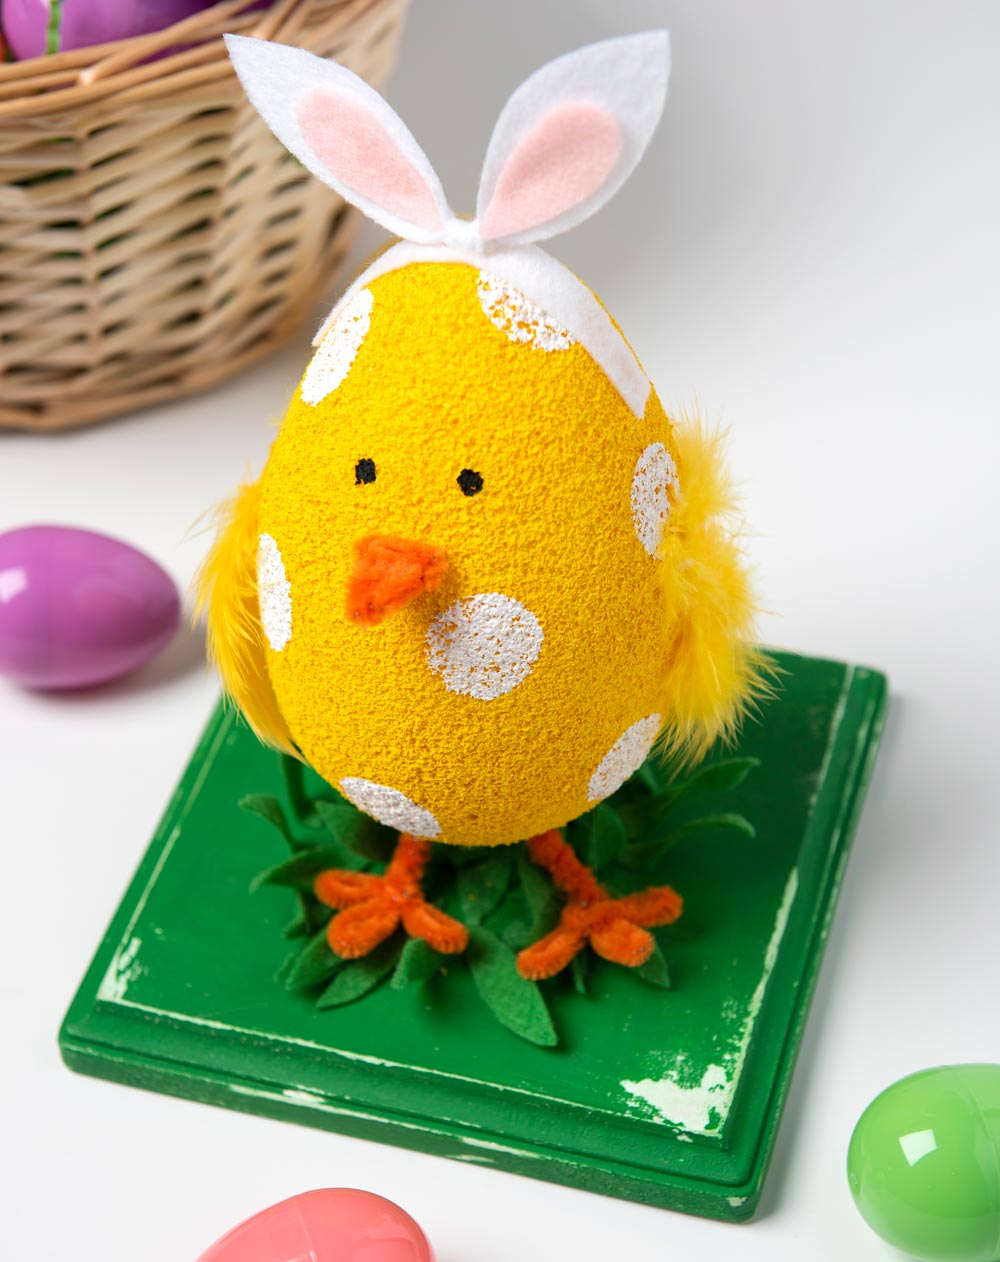 FA_Easter_bty_Chick_030819.jpg